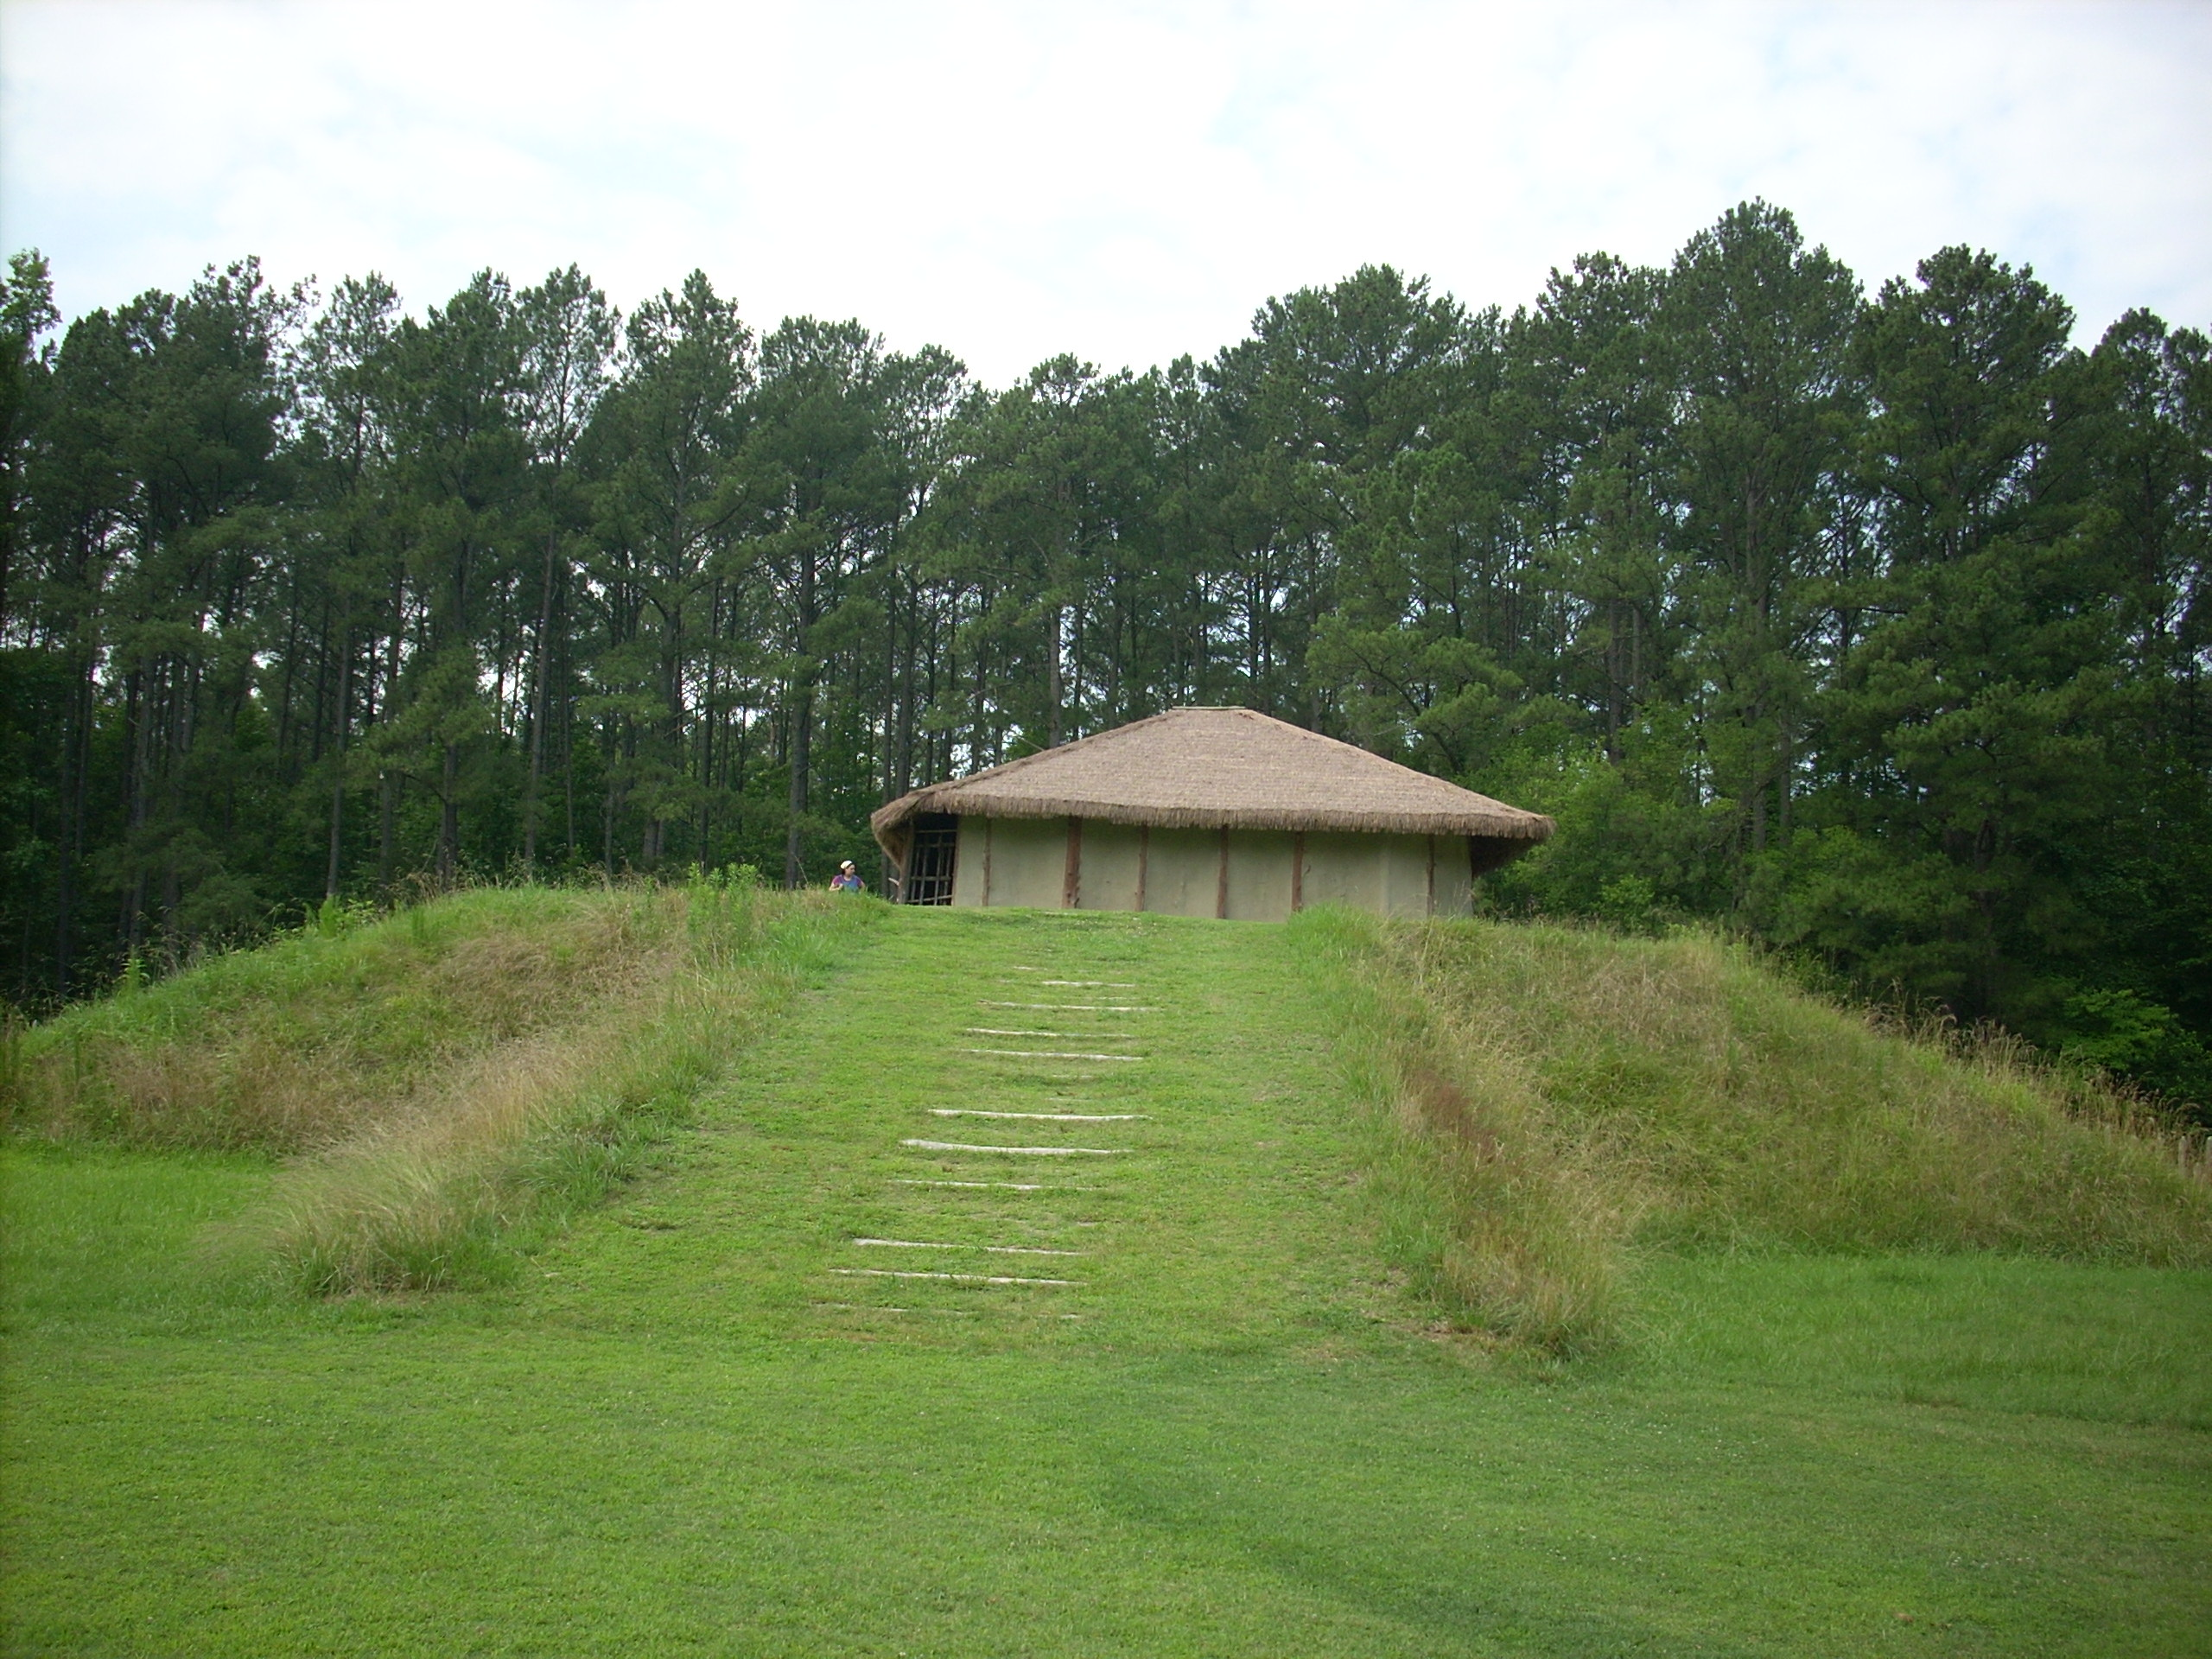 hindu single women in town creek Speed dating event in raleigh, nc on october 22nd, for all single professionals ages 28-42  town creek indian mound state historic site, mount gilead, nc free .